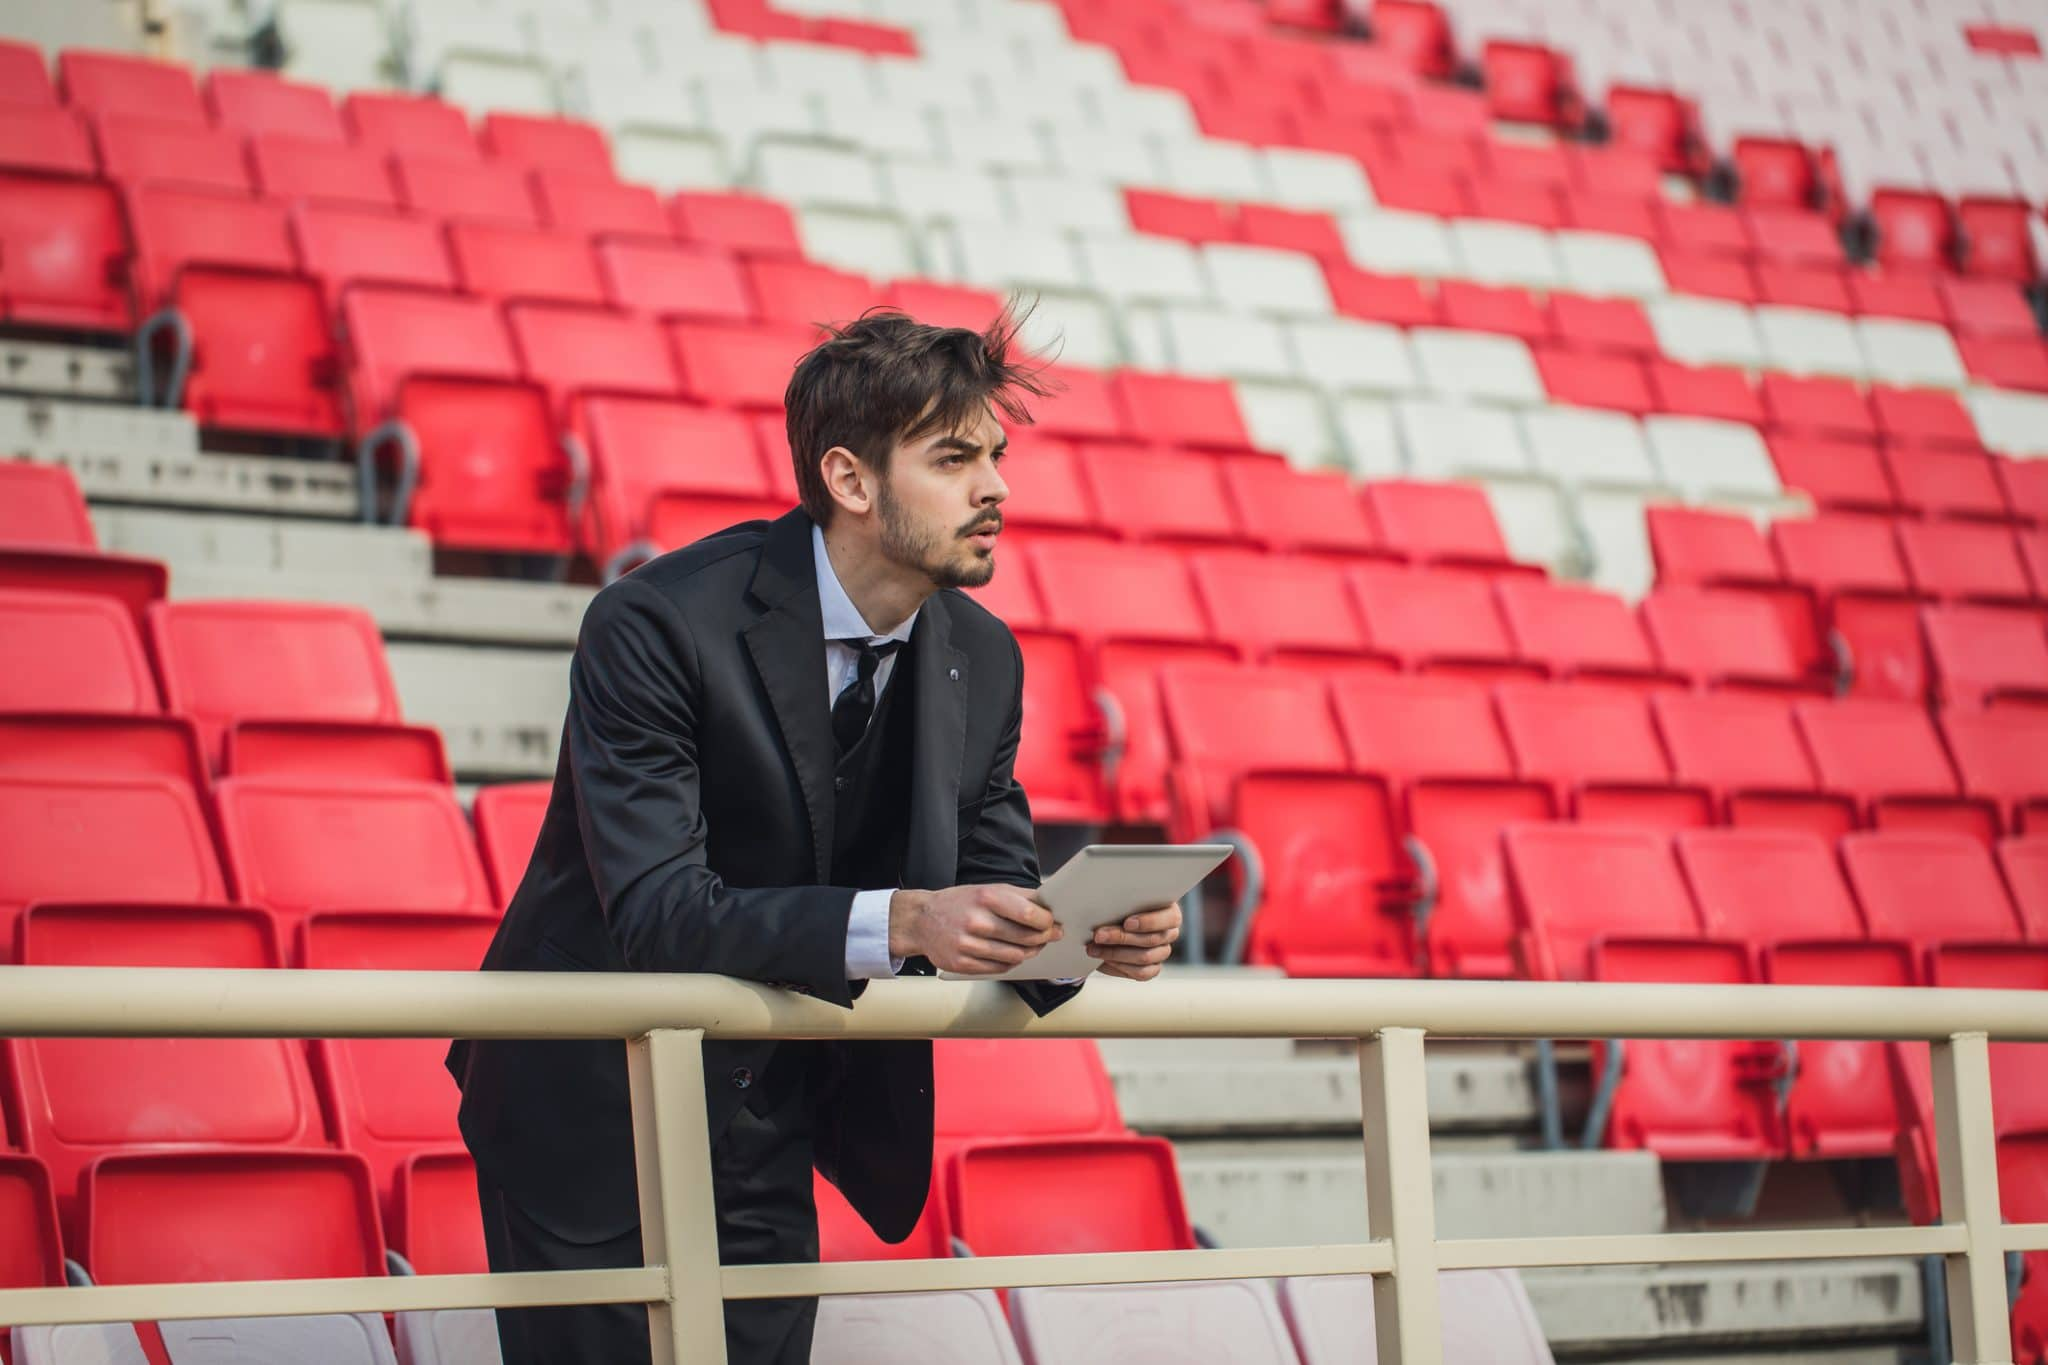 One man, young and handsome, soccer manager on the bleachers, using digital tablet.